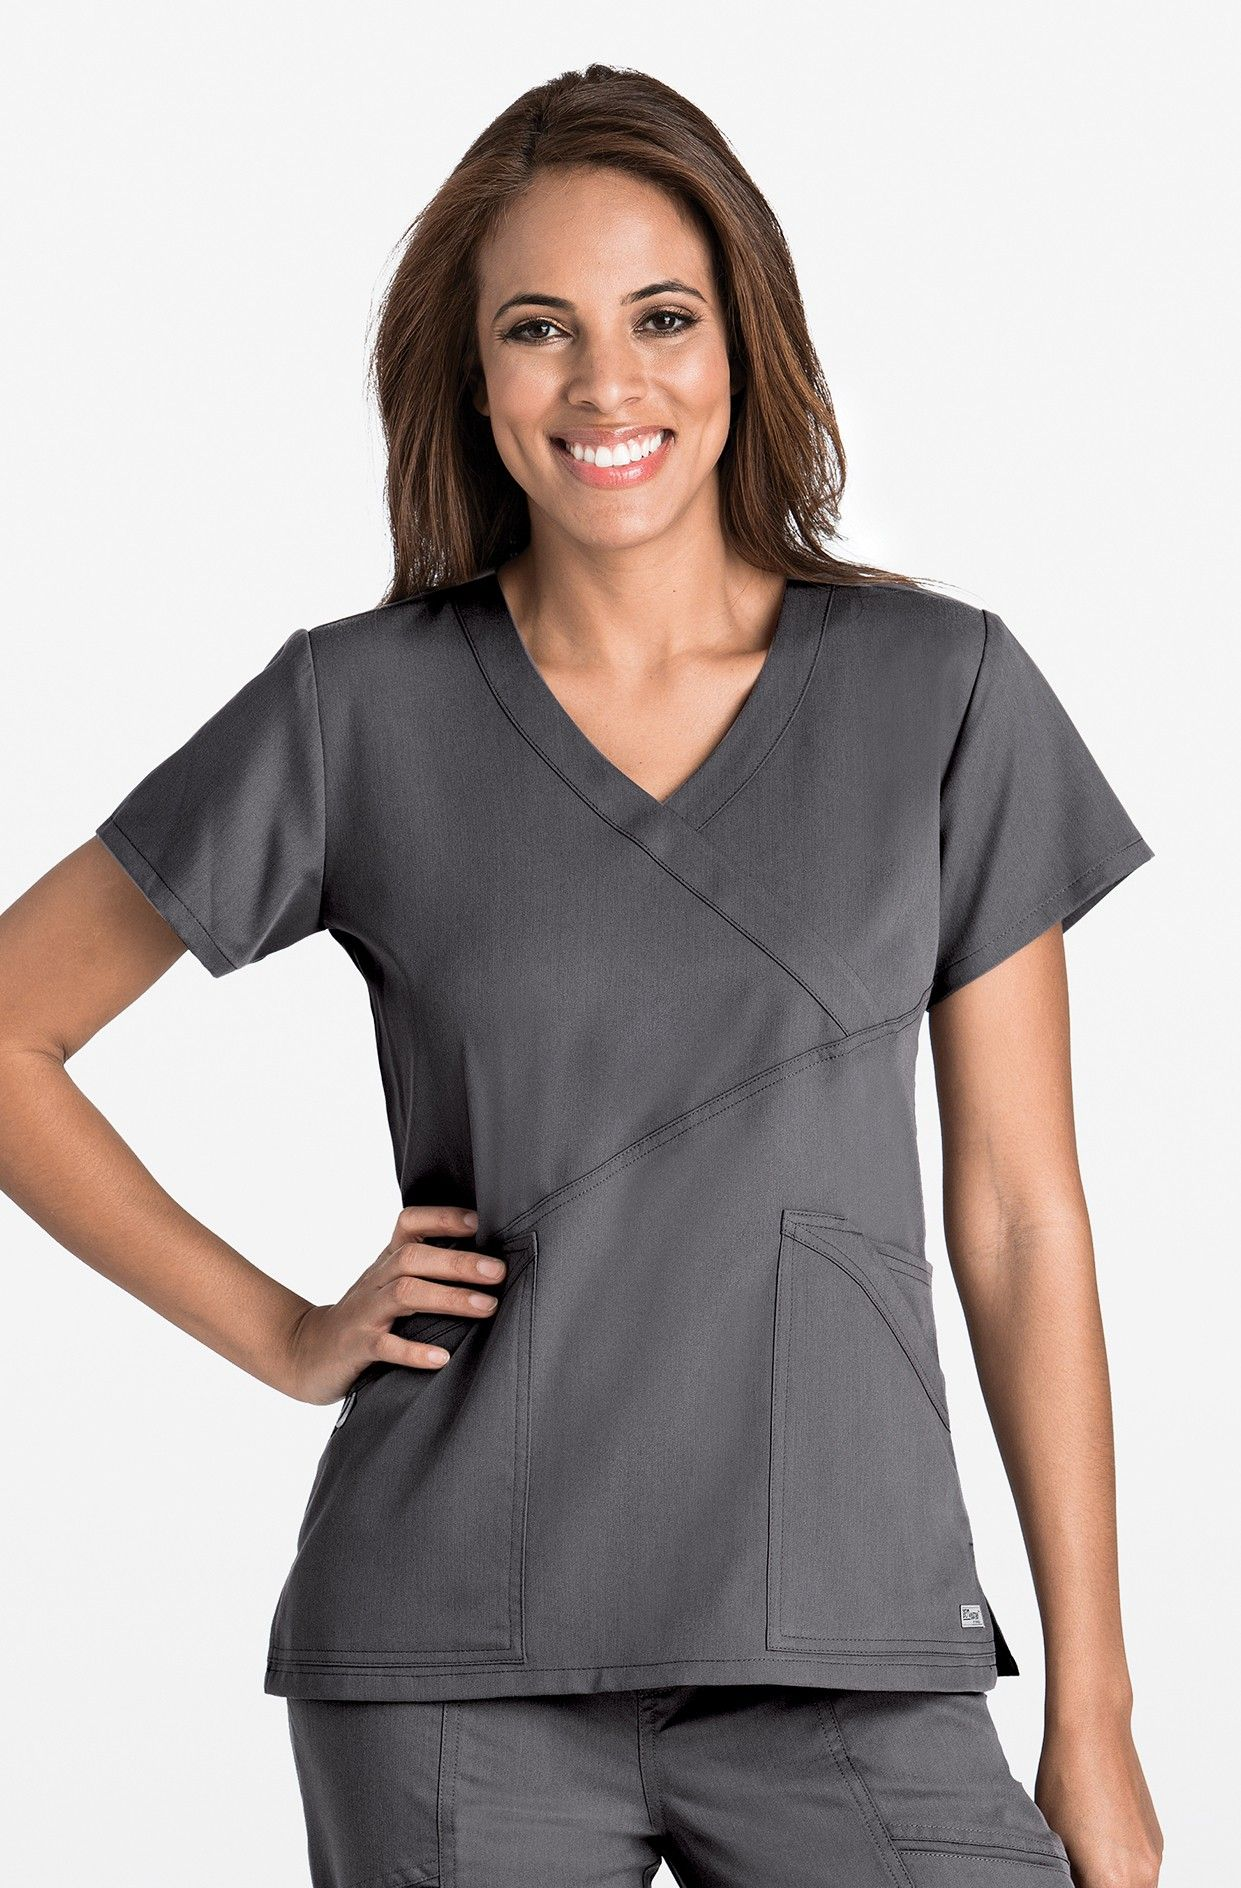 af1d9431621 3-Pocket Criss-Cross Mock Wrap Top | Grey's Anatomy by Barco | Tops ...